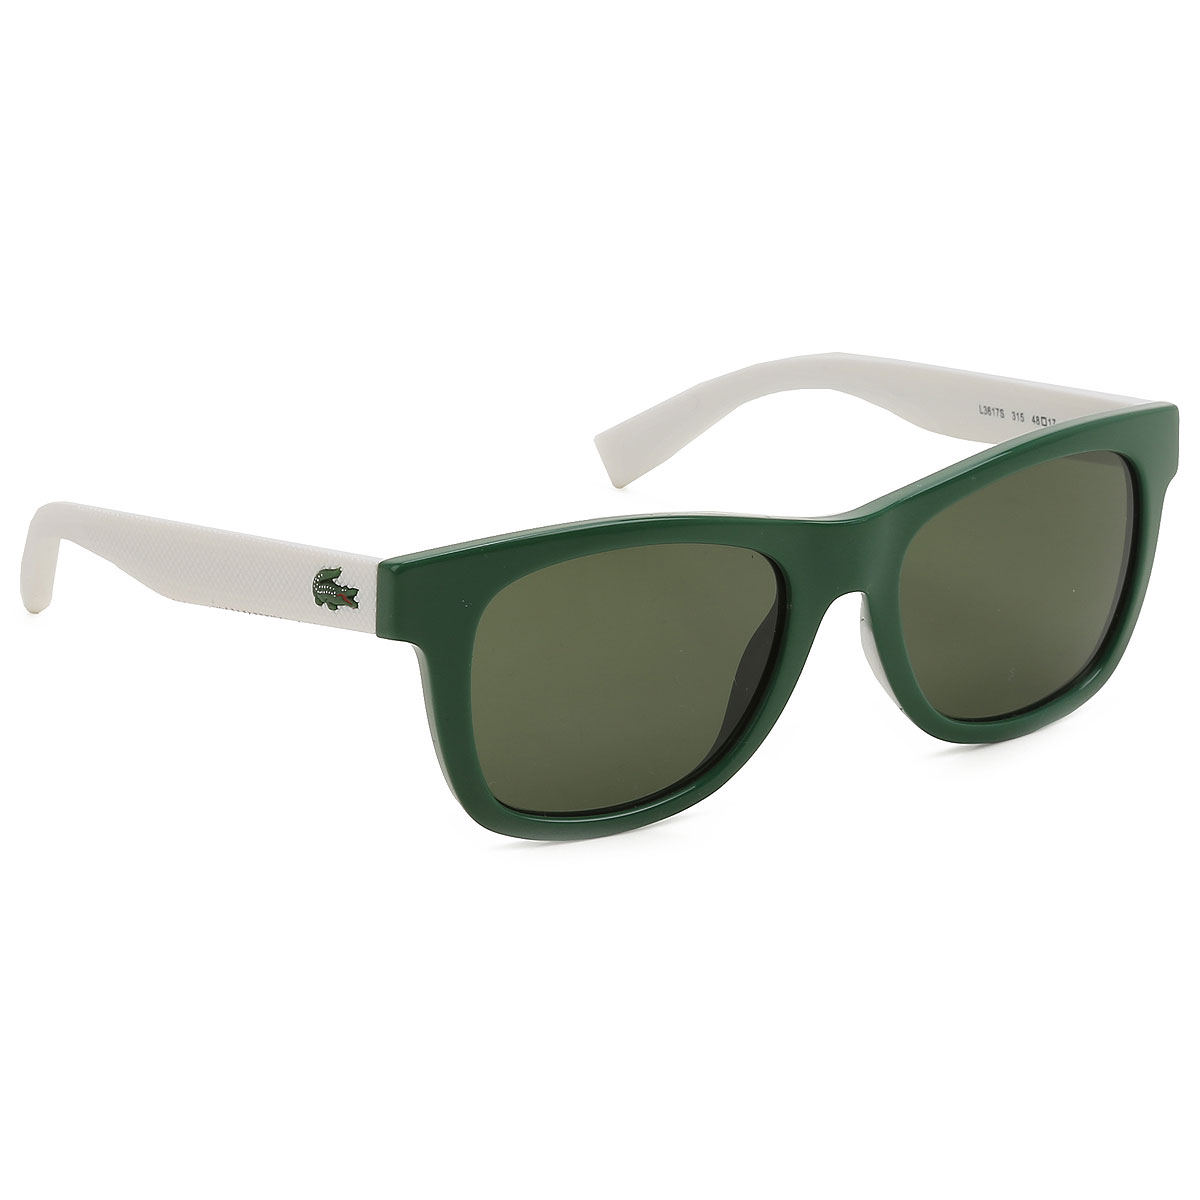 Image of Lacoste Kids Sunglasses for Boys On Sale, Green, 2017